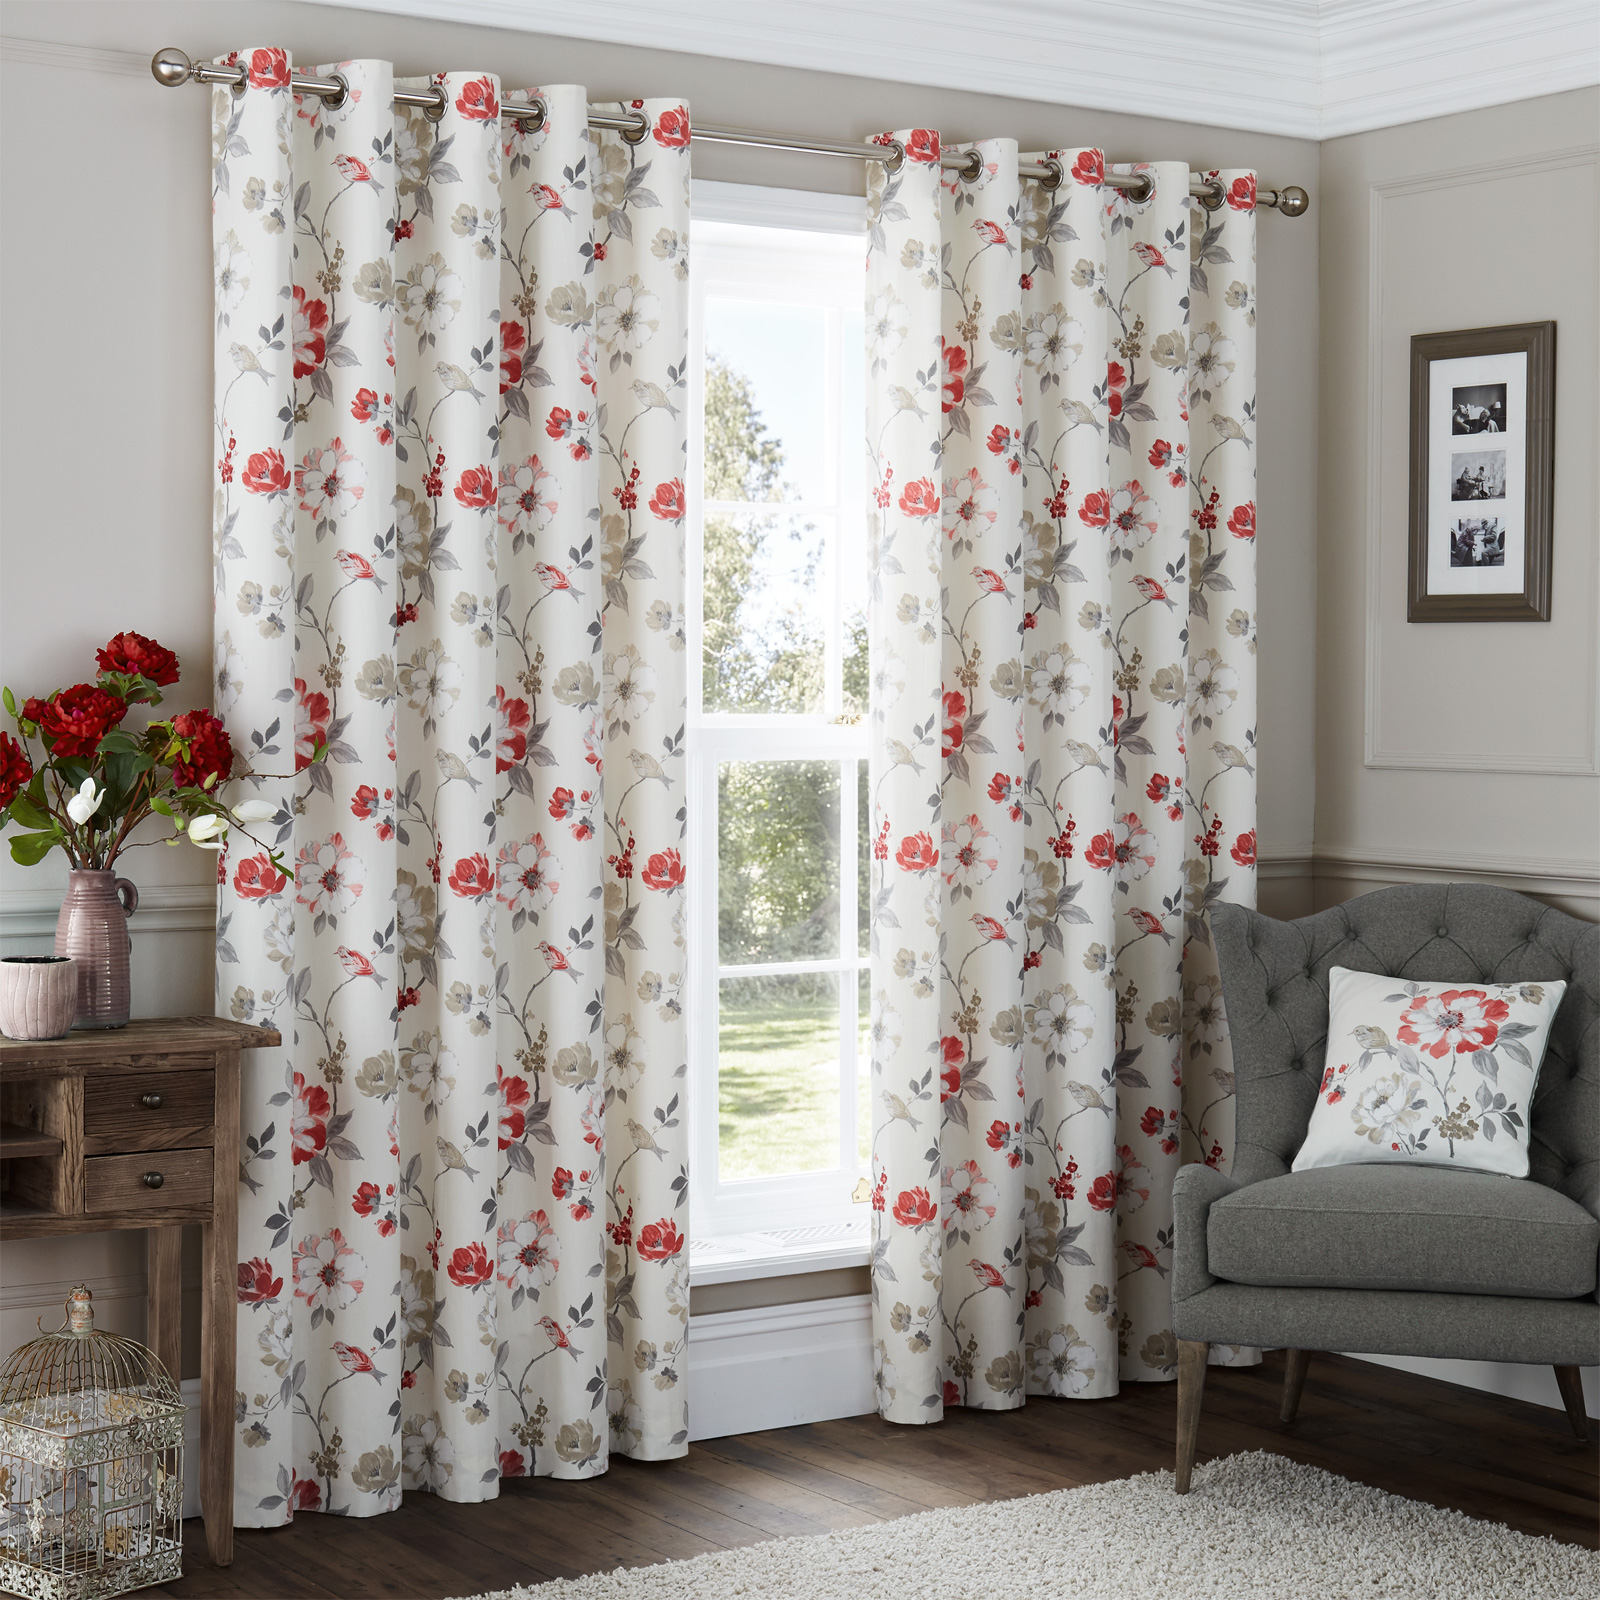 Vintage Floral Patterned Extra Long Curtains